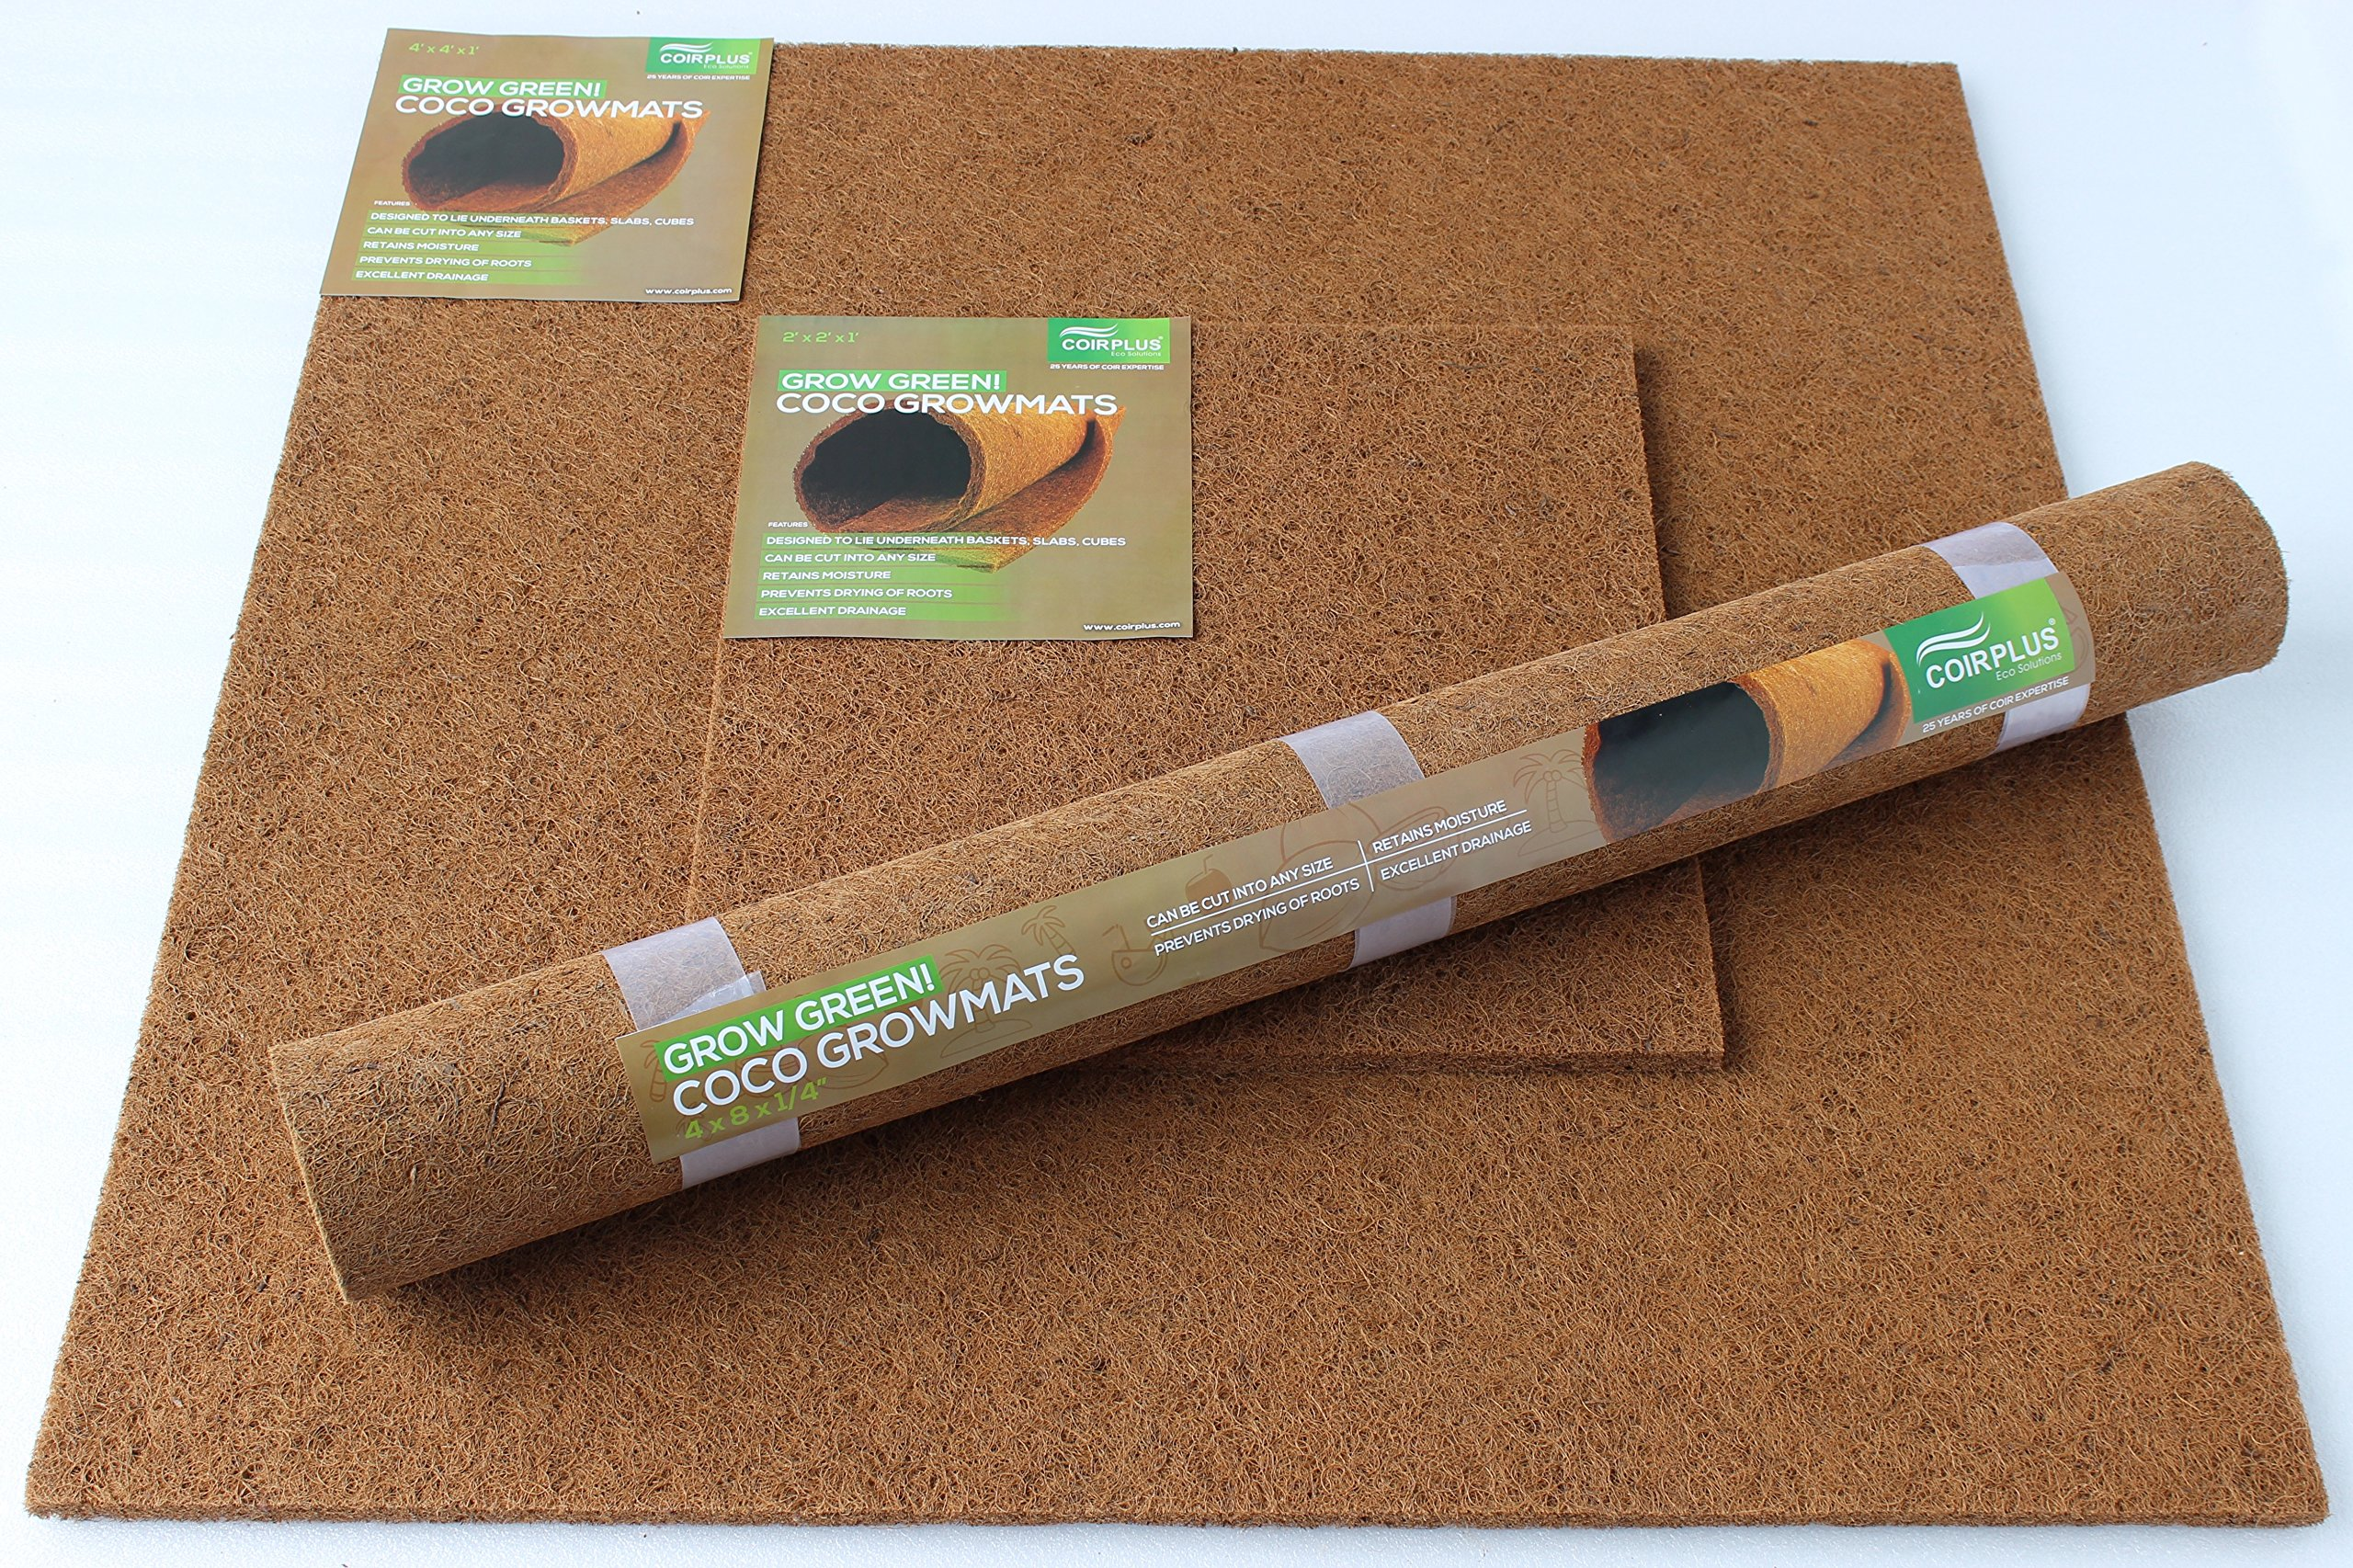 CoirPlus Premium Coco Grow Mat [OMRI Listed]: 4 ft x 4 ft x 1 in (1 piece); 100% Natural & Organic for growing Microgreens, Wheatgrass, etc by CoirPlus